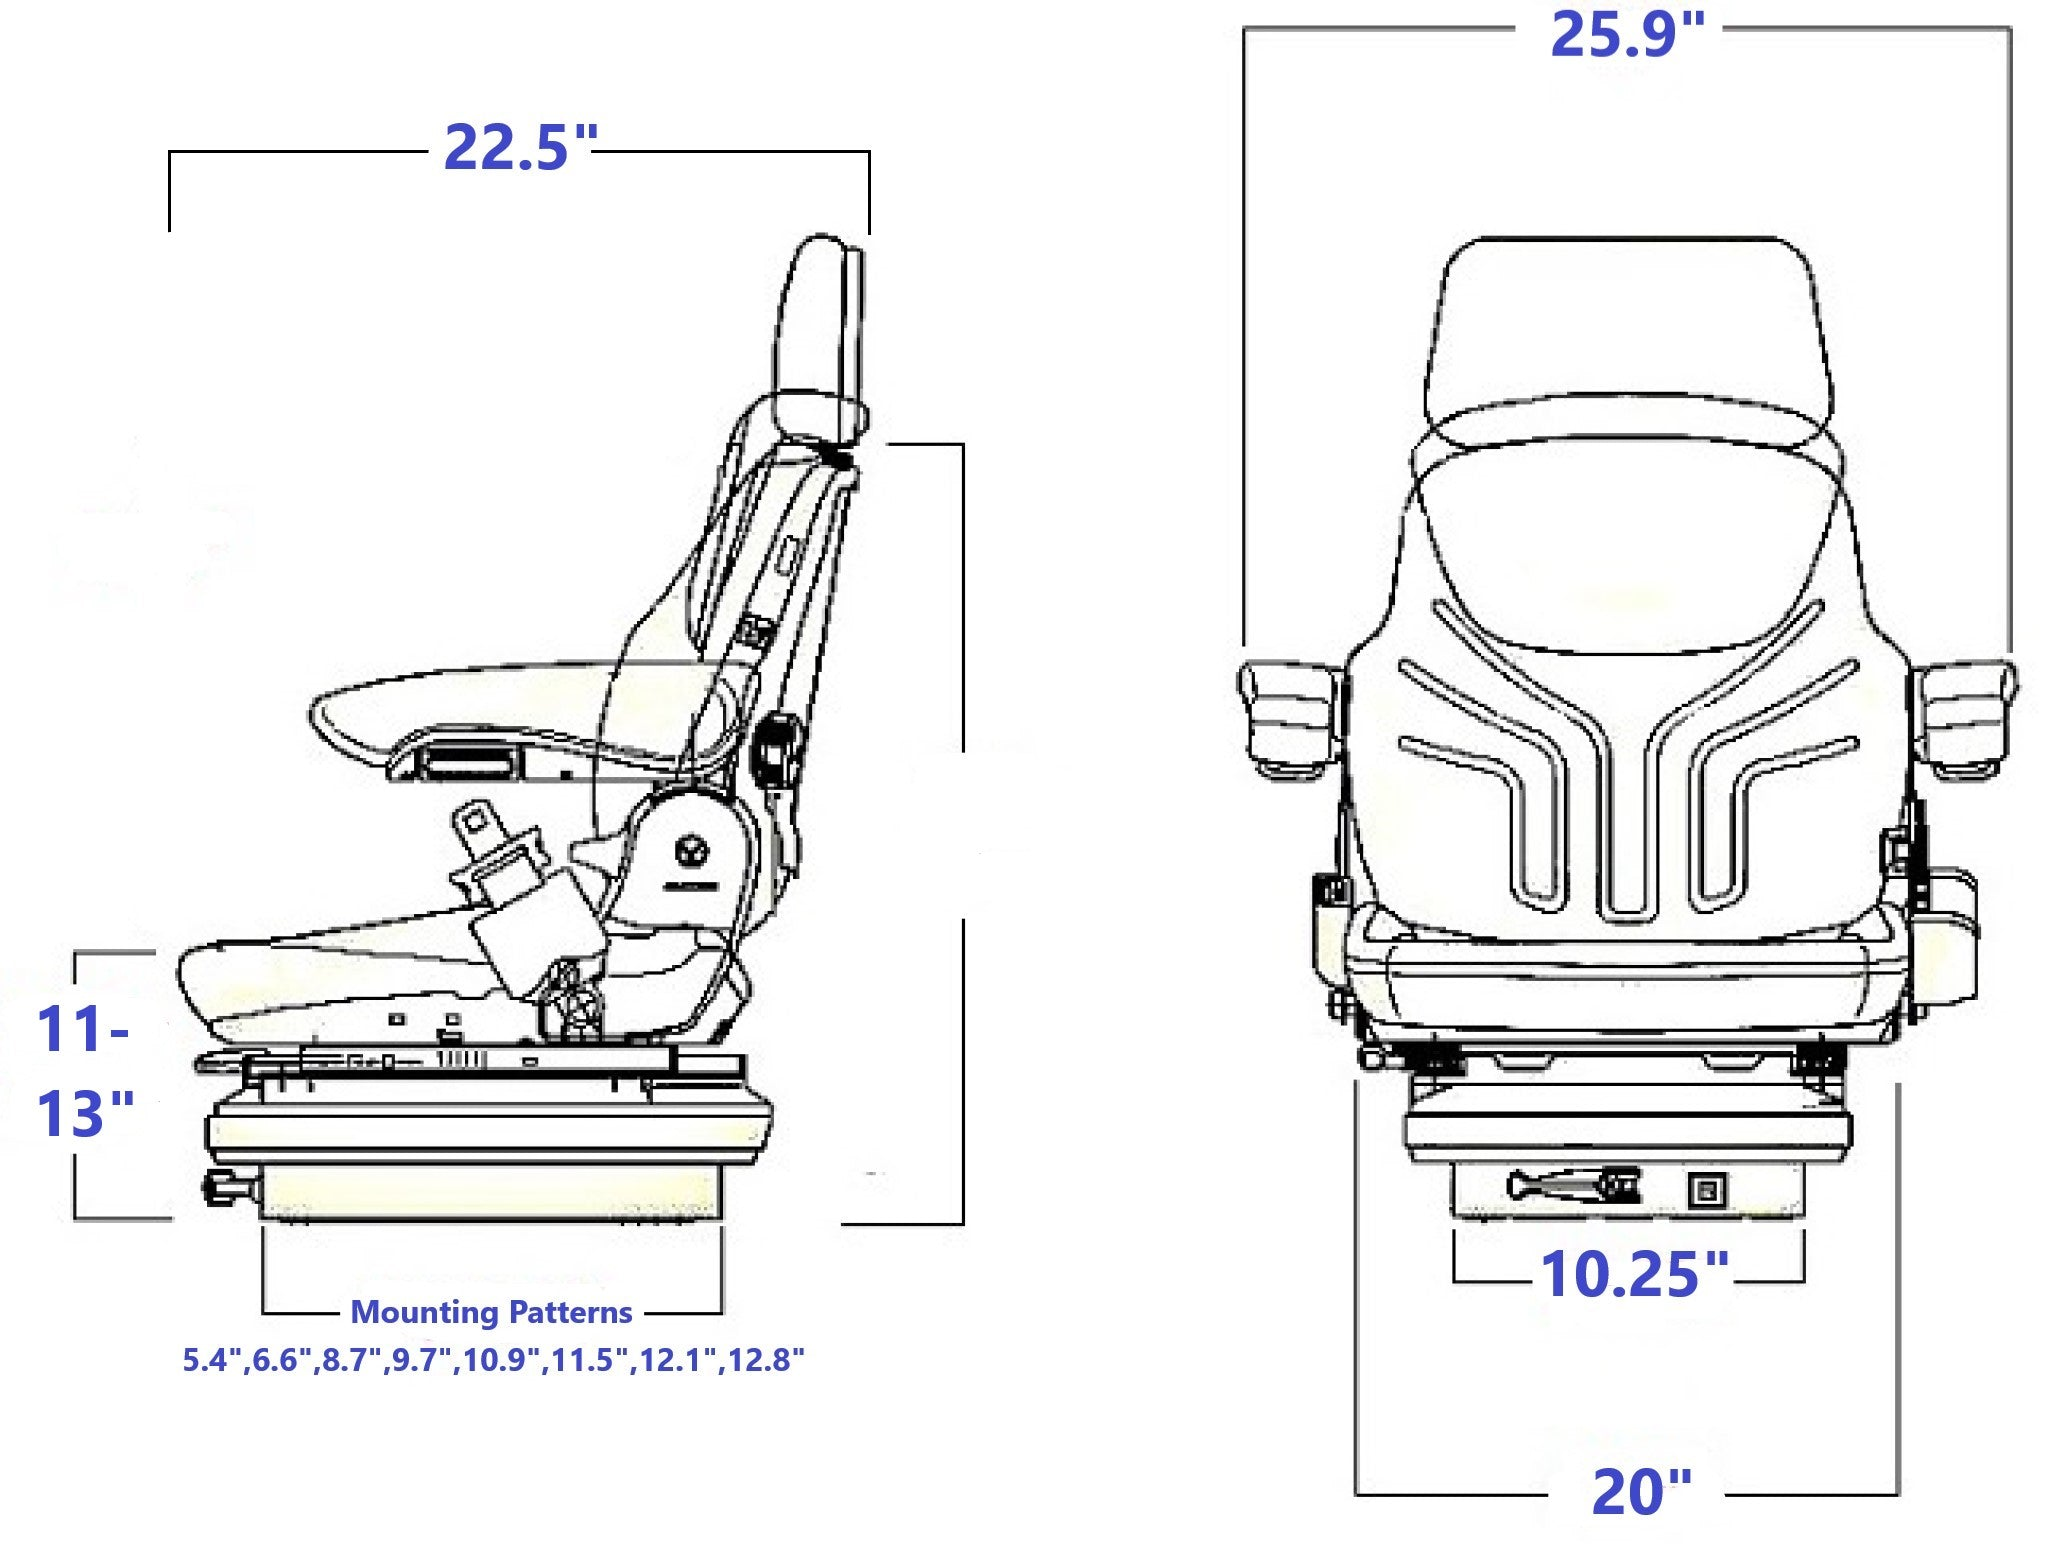 Grammer MSG85/721 Technical Drawing